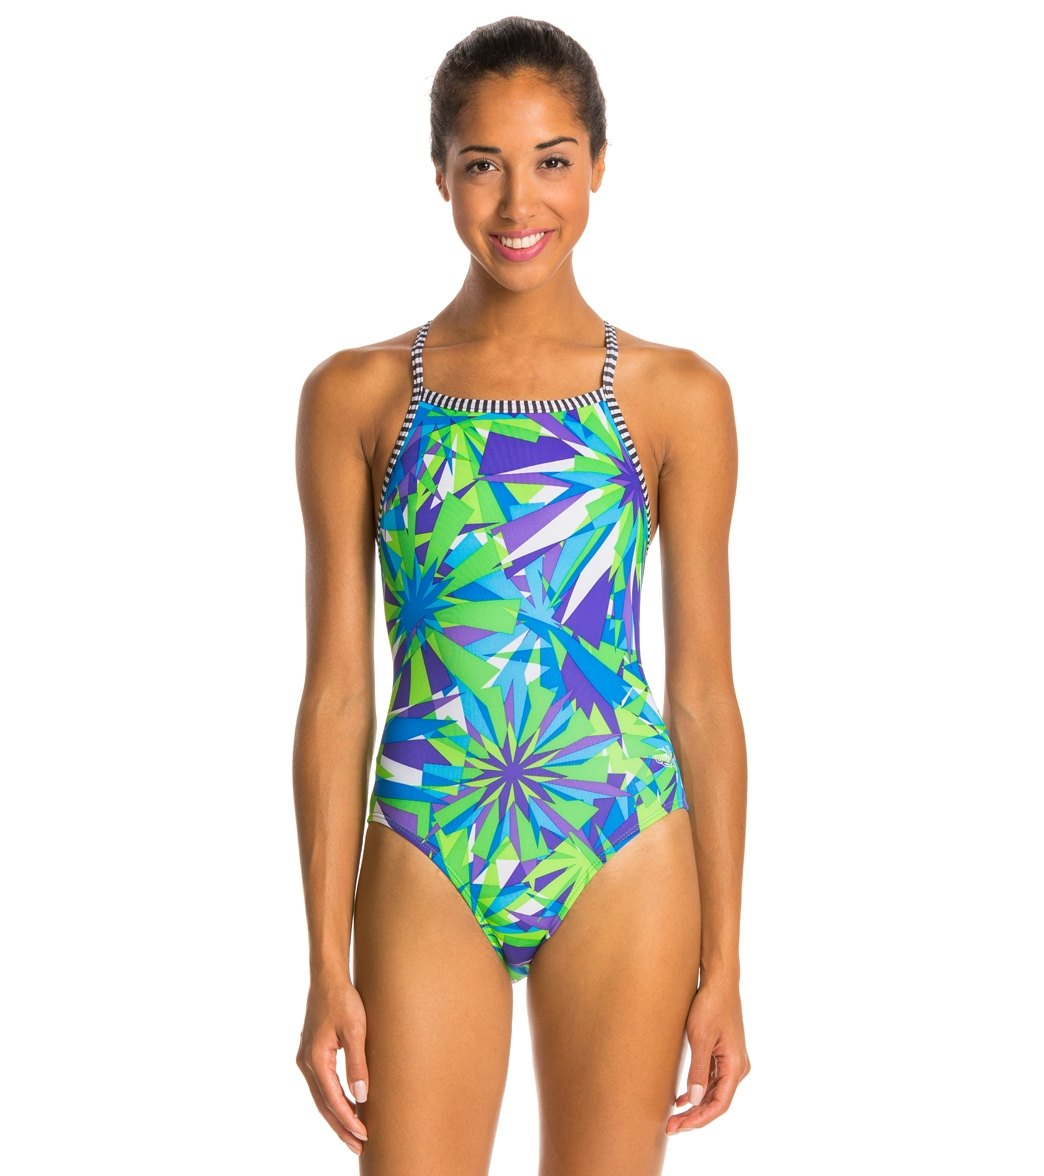 8fbed305e7 Dolfin Uglies Dazzle Women's V-2 Back One Piece Swimsuit at ...